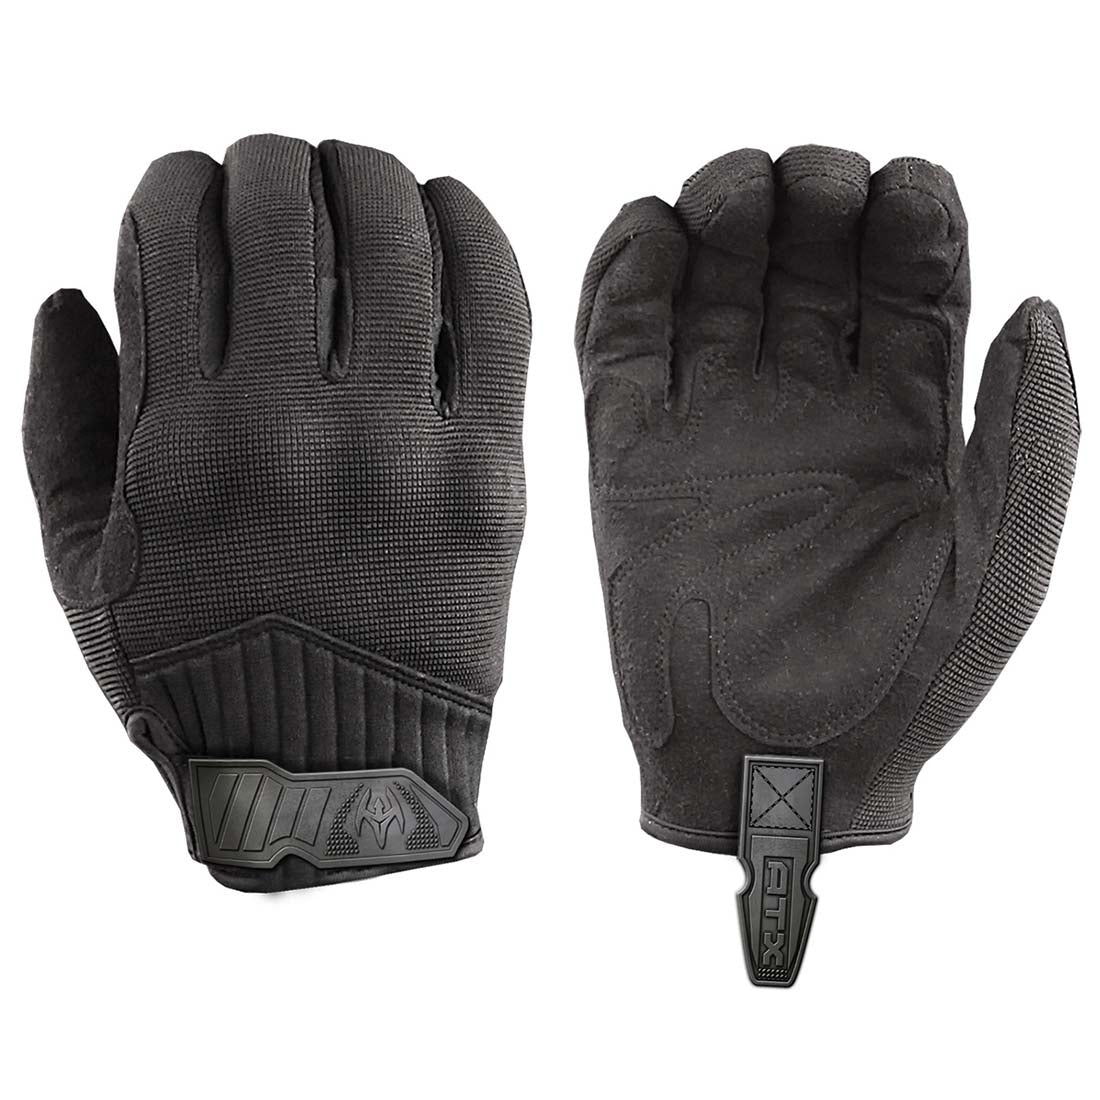 Damascus Gear Unlined Hybrid Duty Gloves